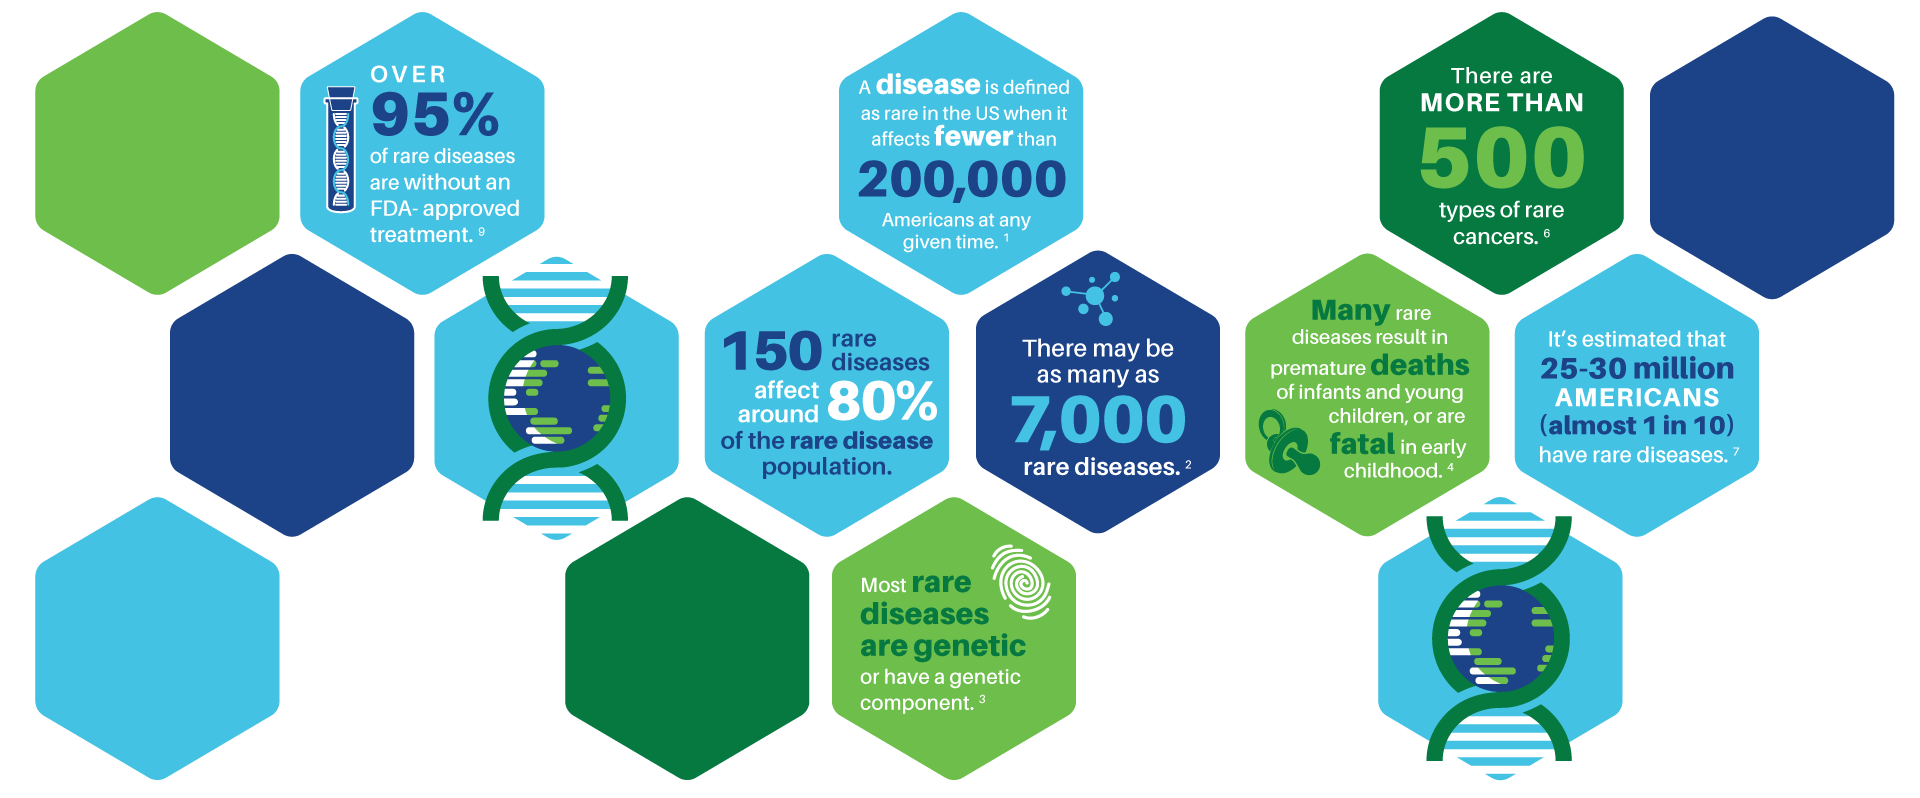 Key Facts on Rare Diseases